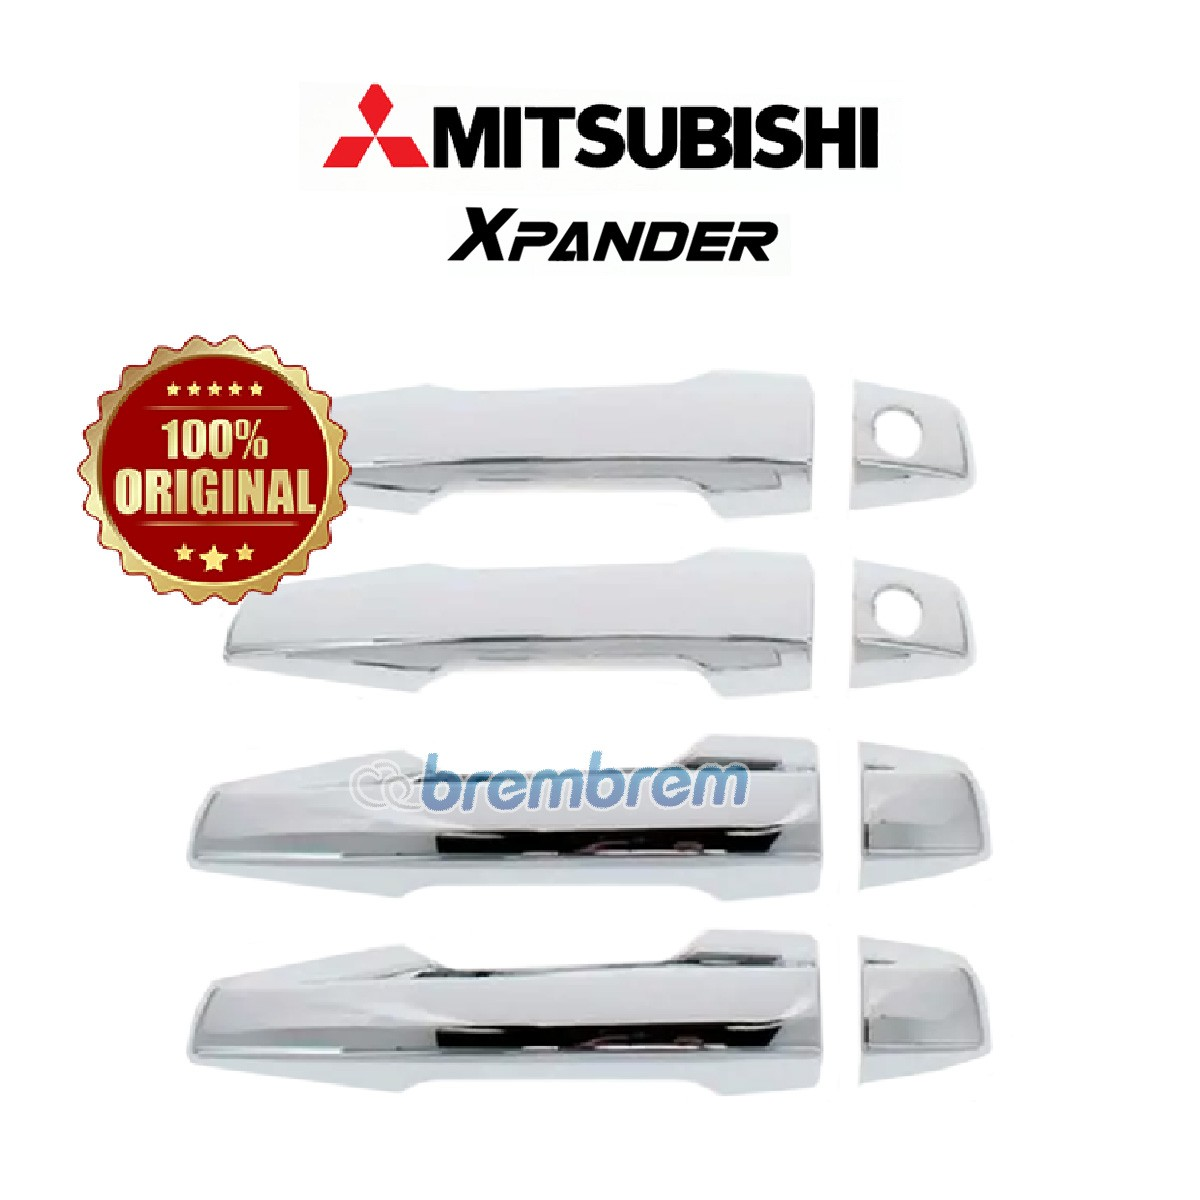 DOOR HANDLE MITSUBISHI XPANDER